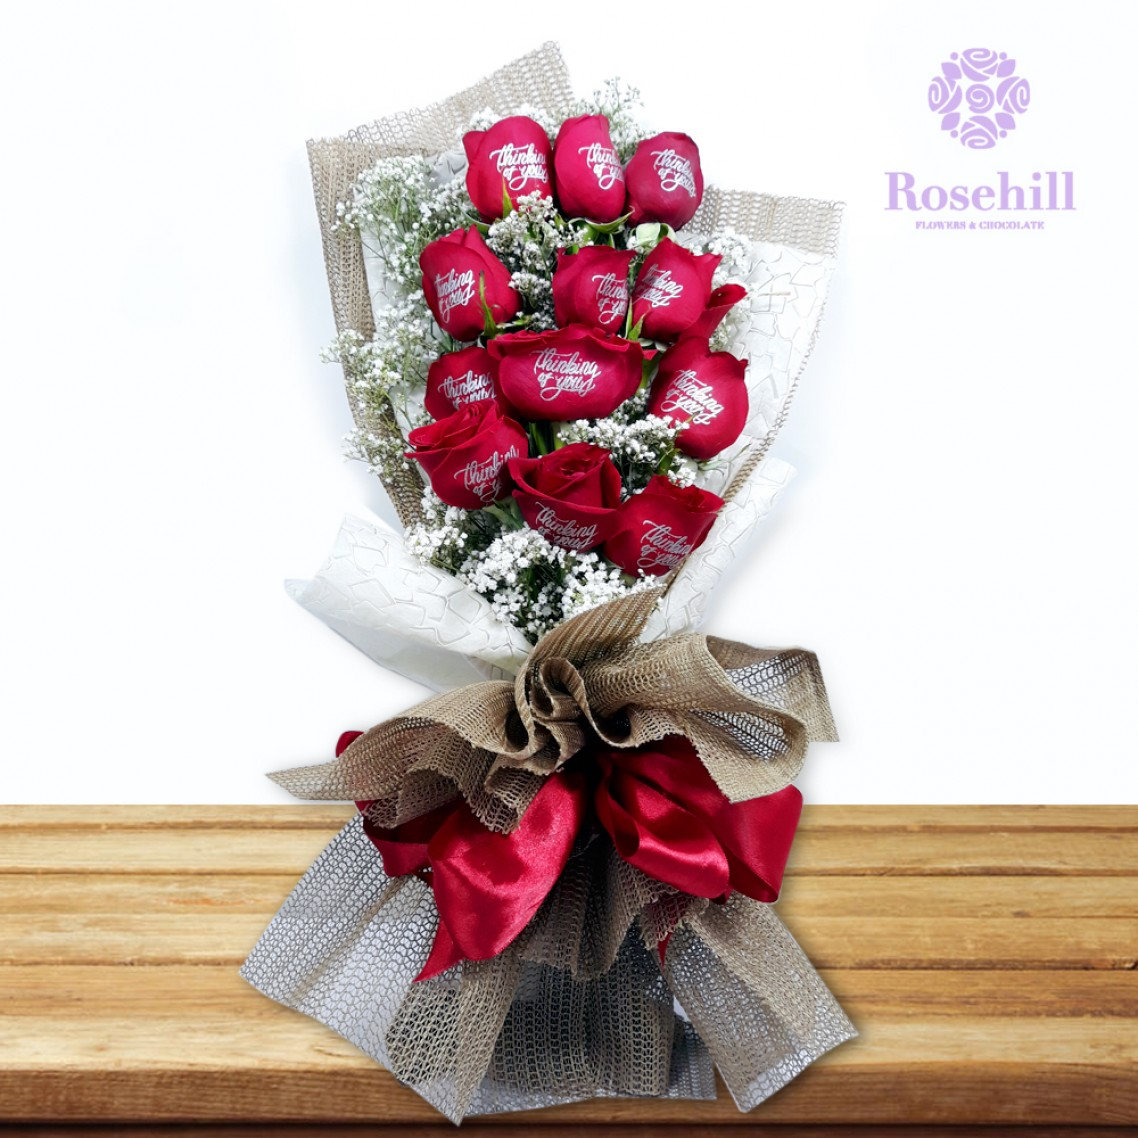 1524664403-h-250-_Rosehill's Thinking of You Bouquet with Baby's Breath- Red.jpg